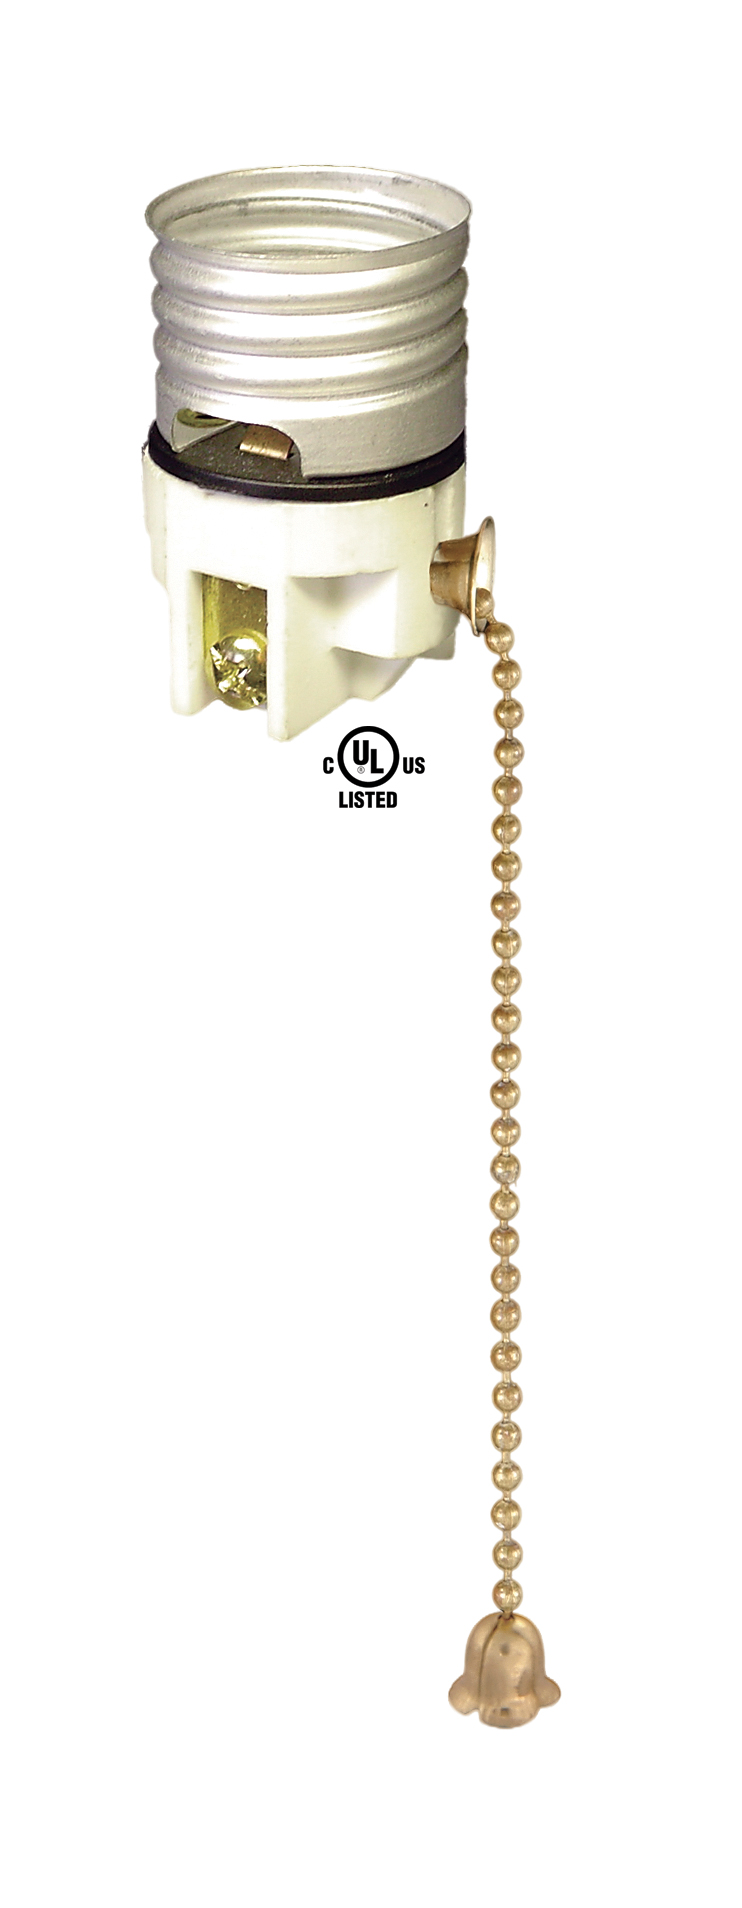 Porcelain Pull Chain Socket Interiors 48210a B Amp P Lamp Supply